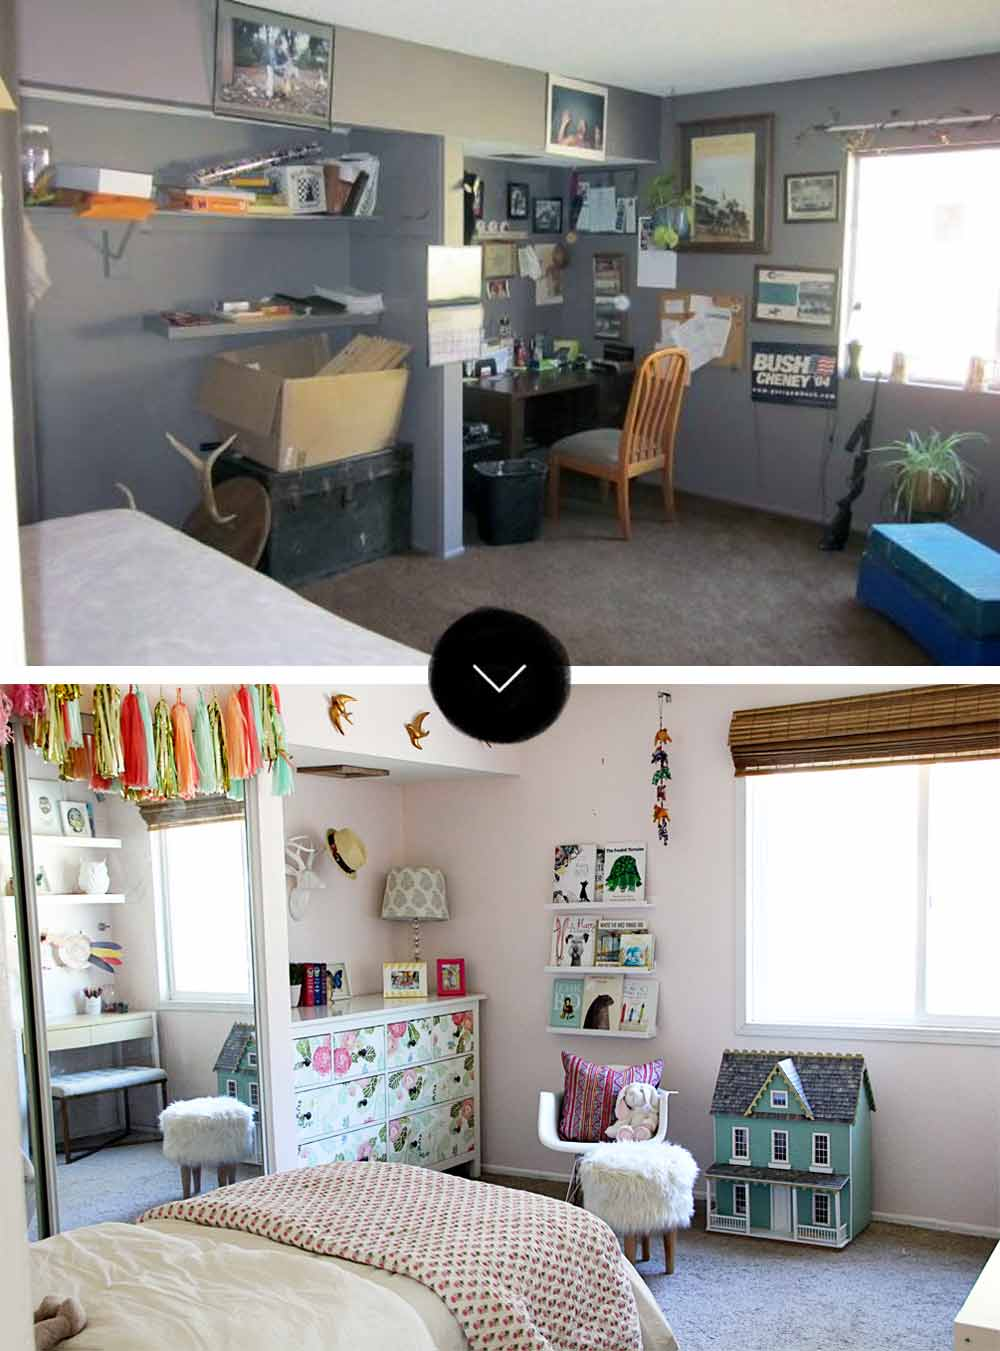 Before & After: A Modern Bohemian Fixer-Upper in Southern California, on Design*Sponge